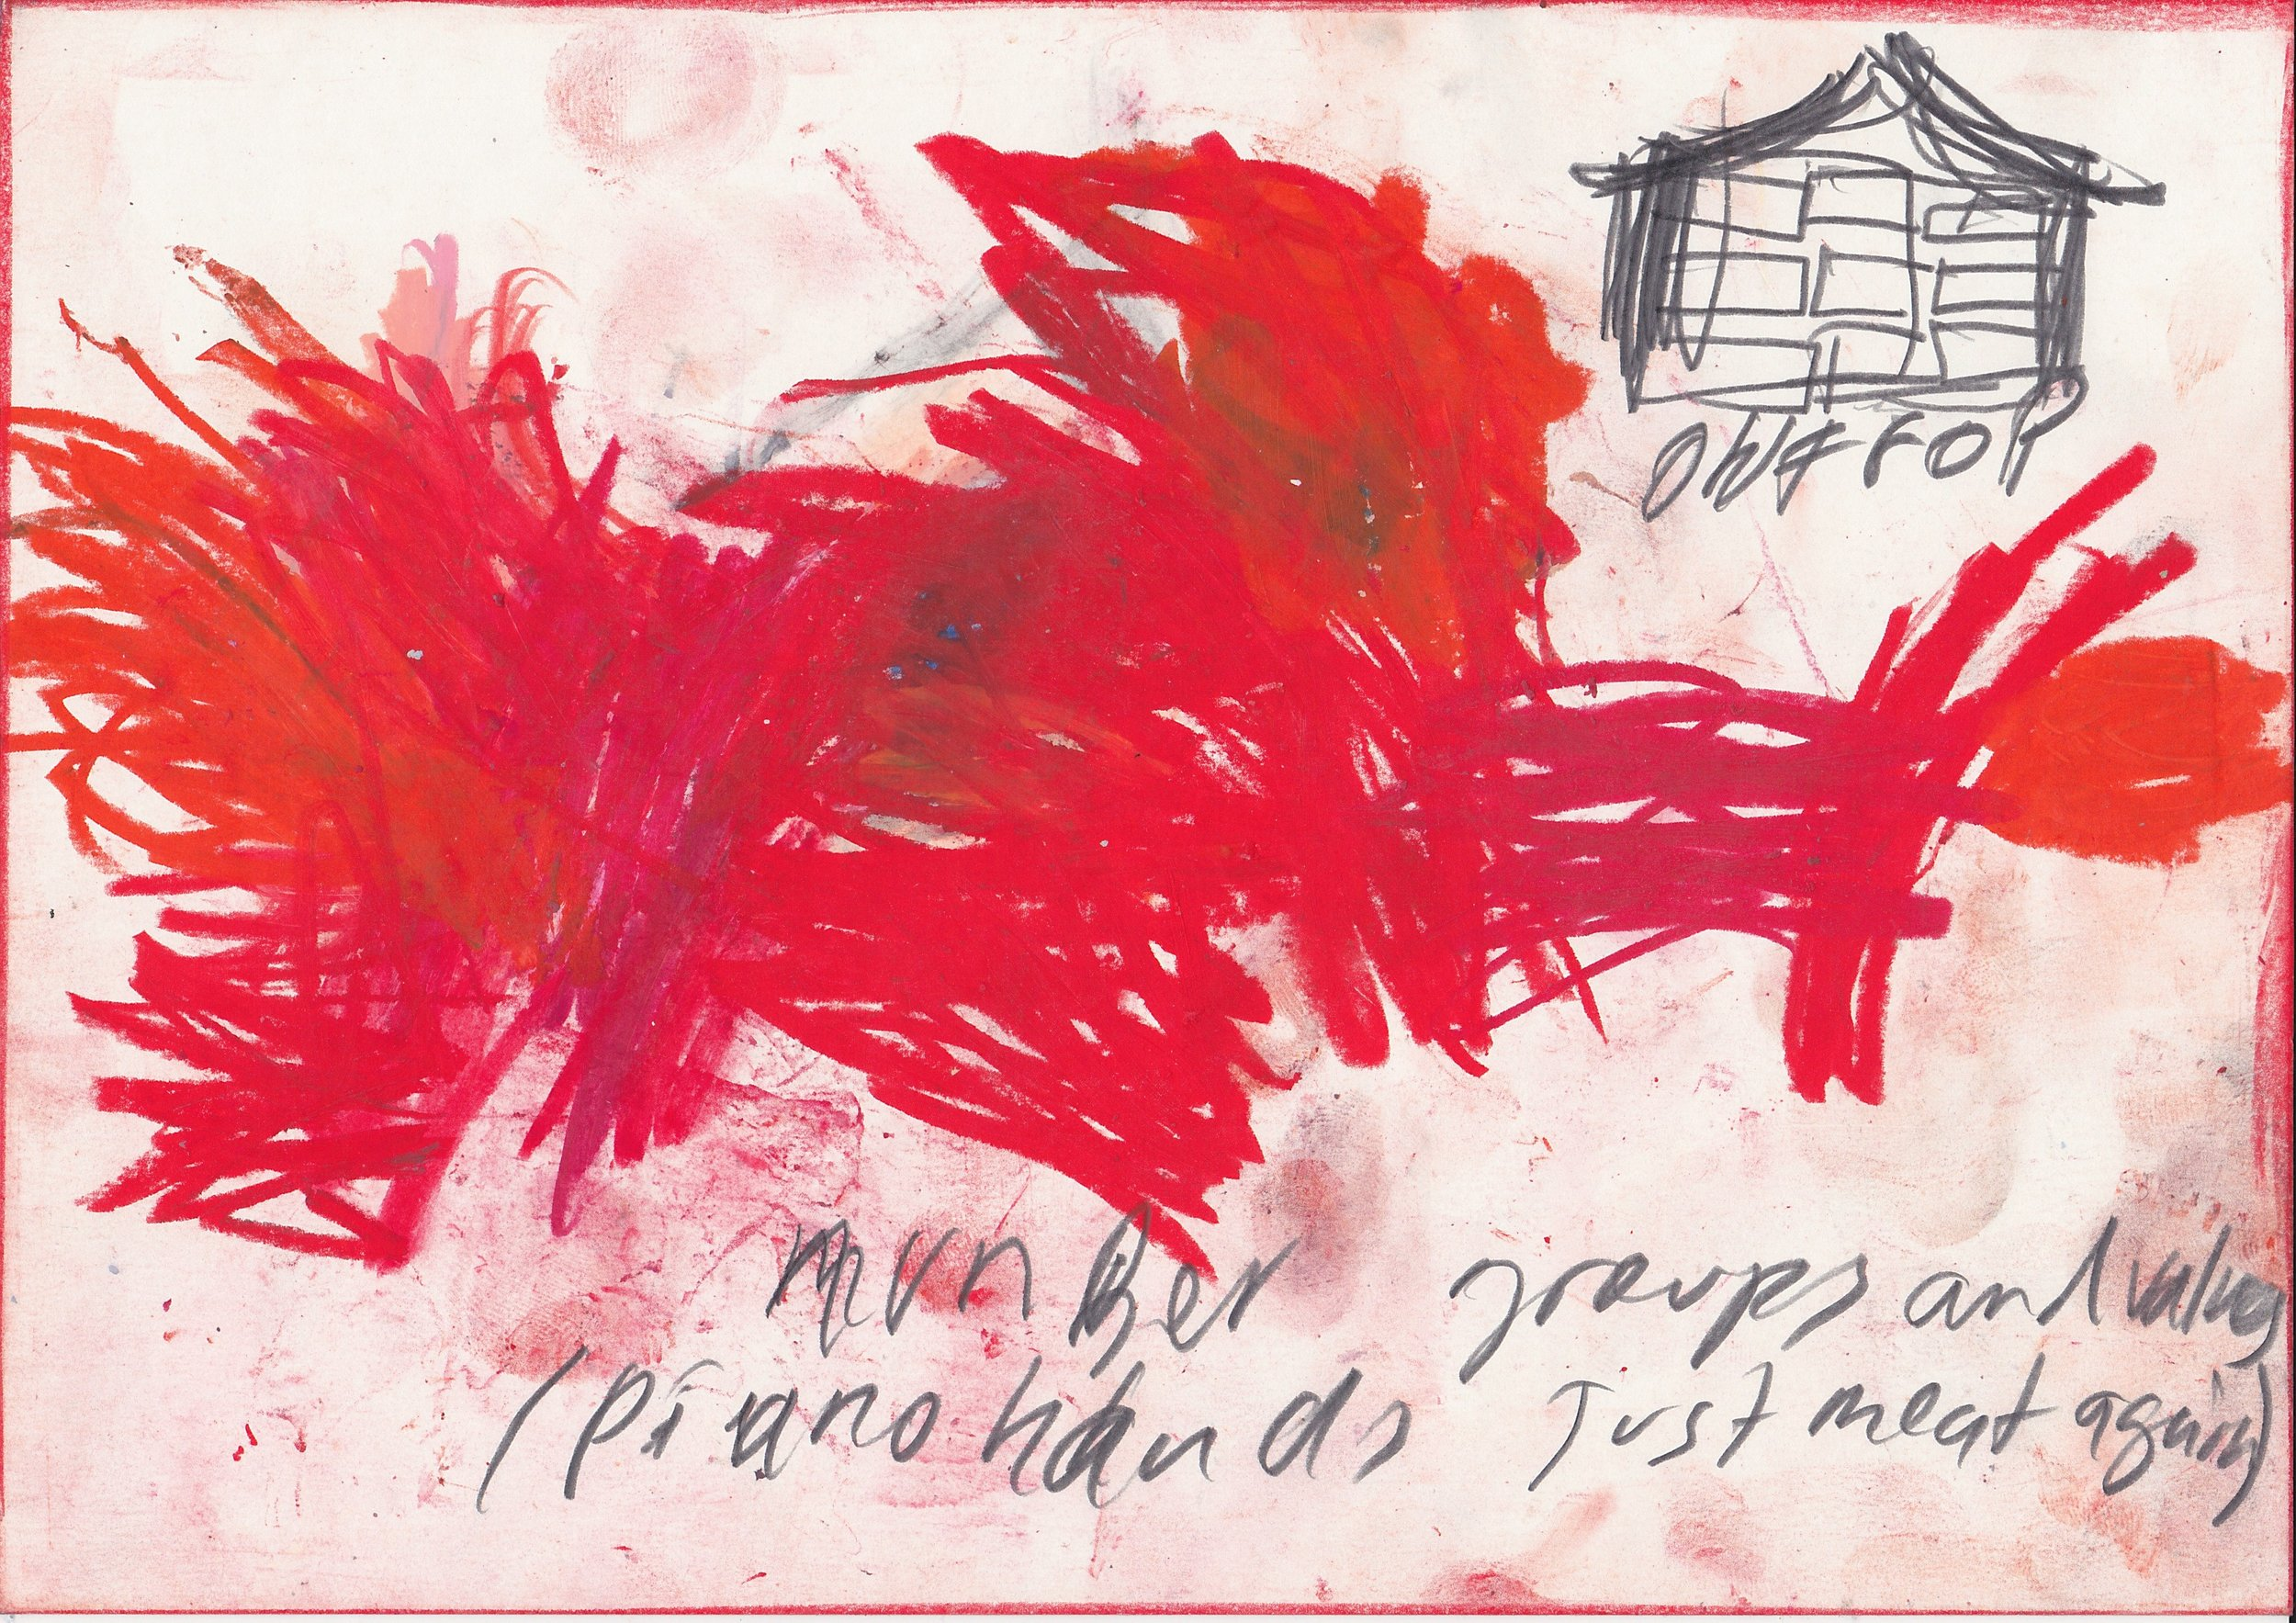 """""""Number groups and values/piano hands just meat again"""" crayons and dirt on paper 21x30 cm."""